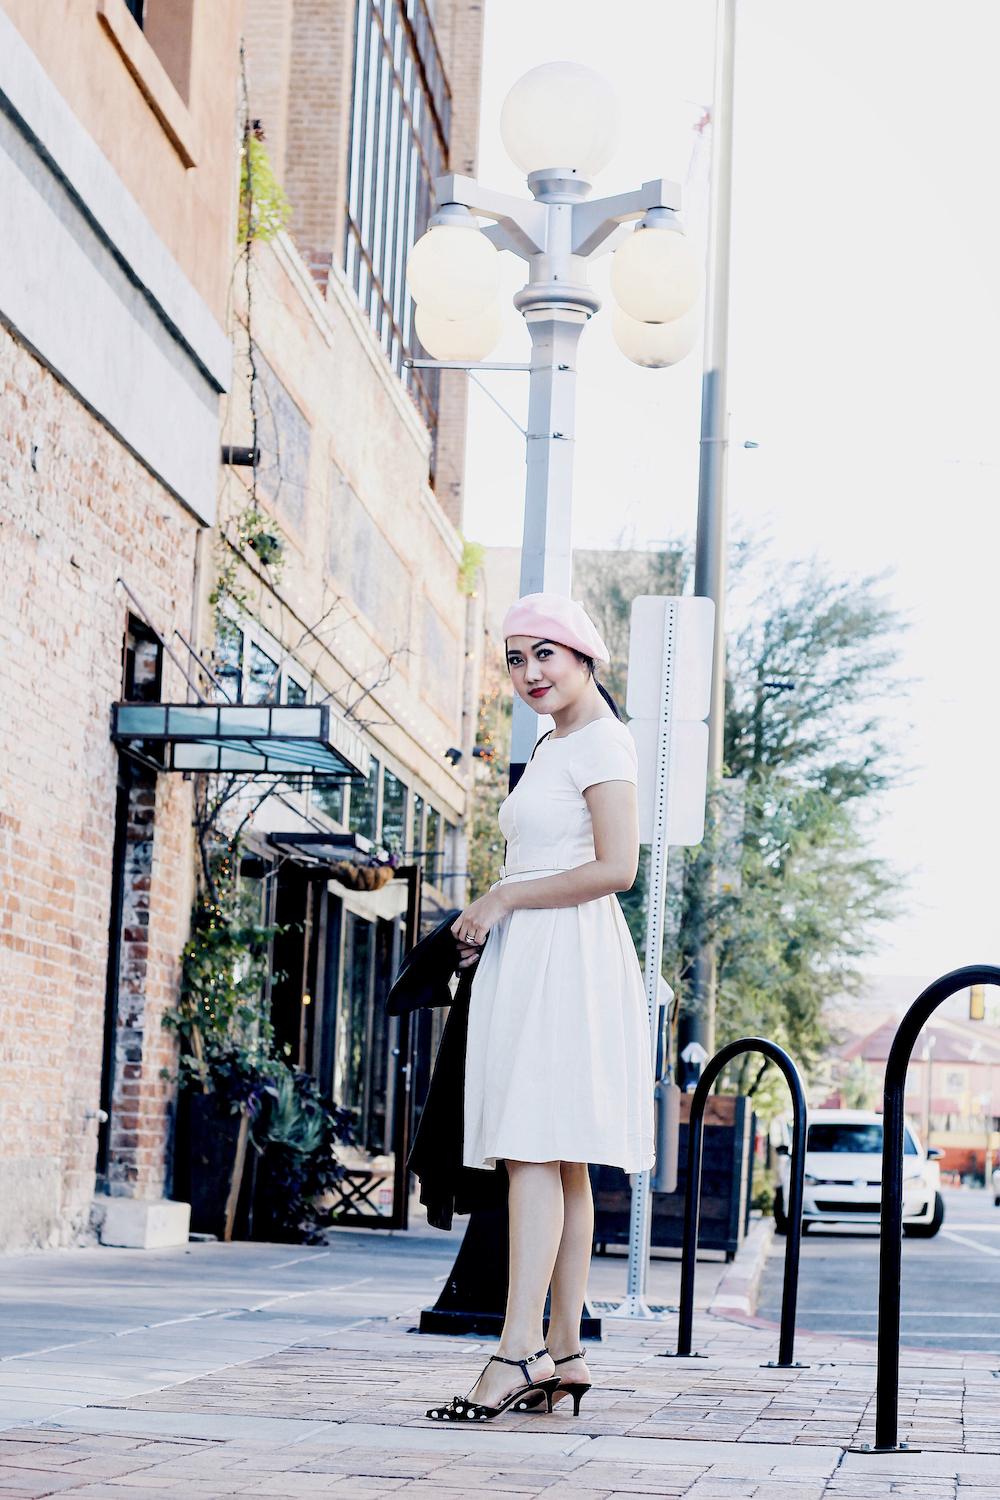 Holiday-Outfit-Ideas-Classy-White-Dress-Polka-Dot-kitten-heels-pink-French-Beret-Party-Outfit-Ideas